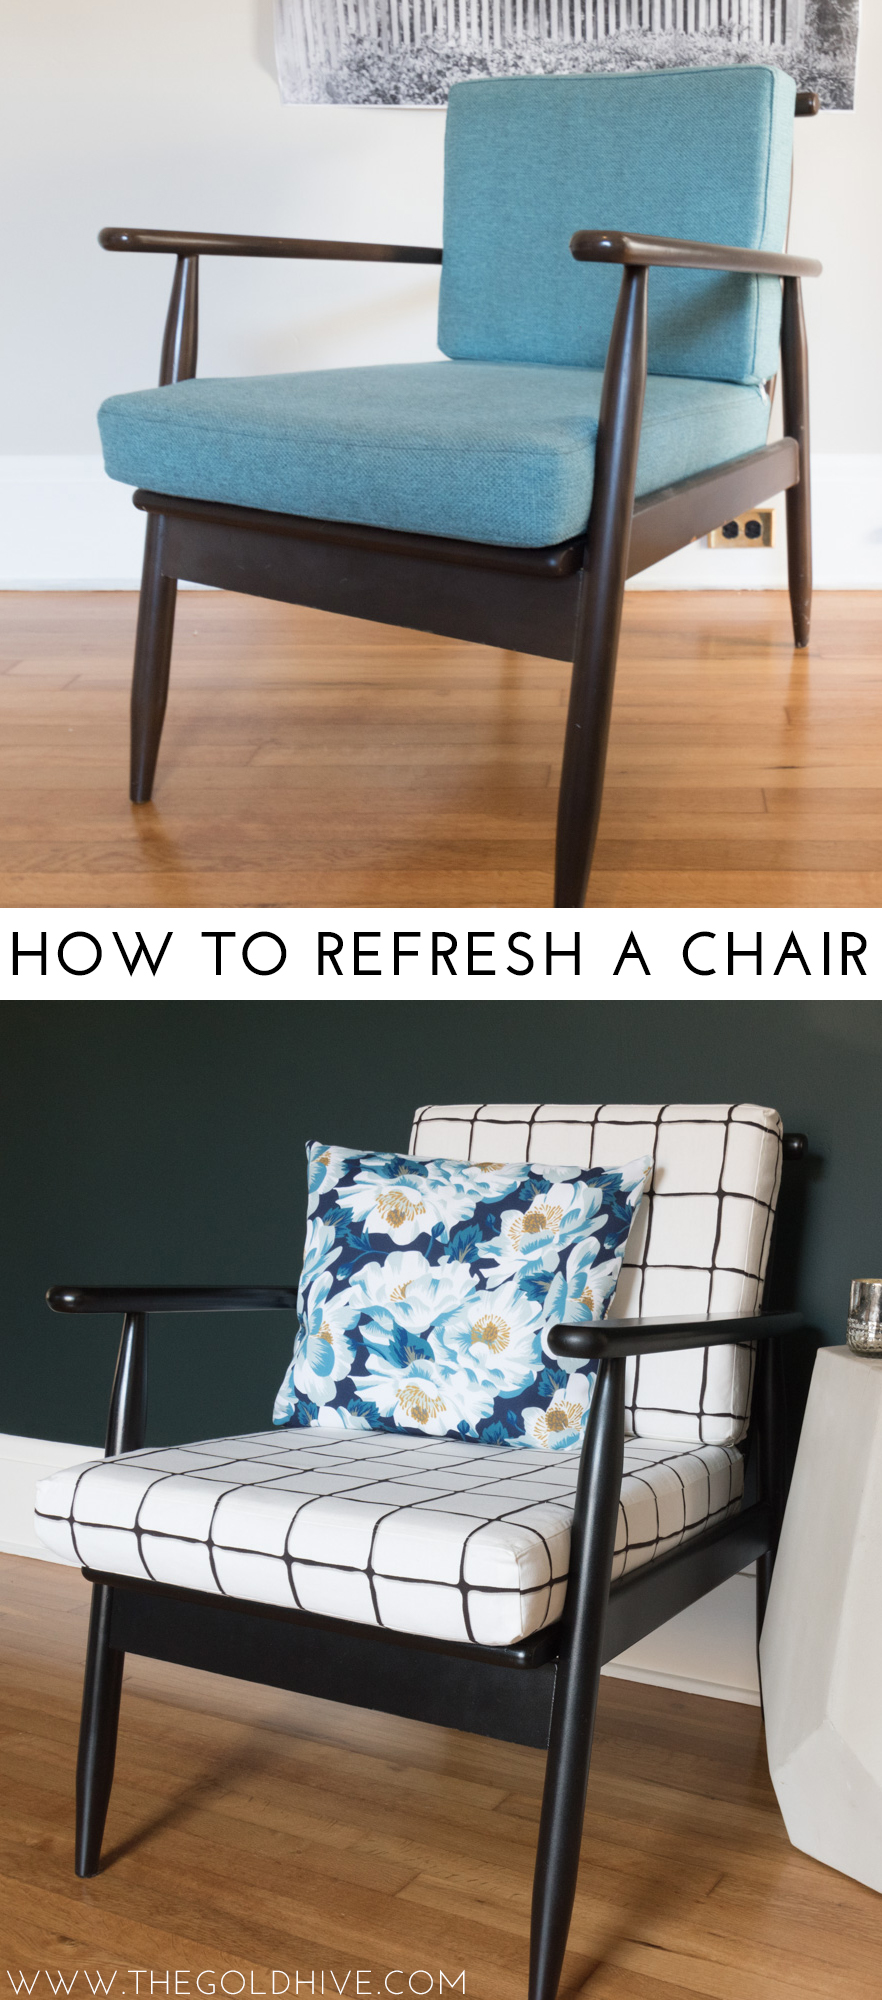 How to refresh a chair - The Gold Hive